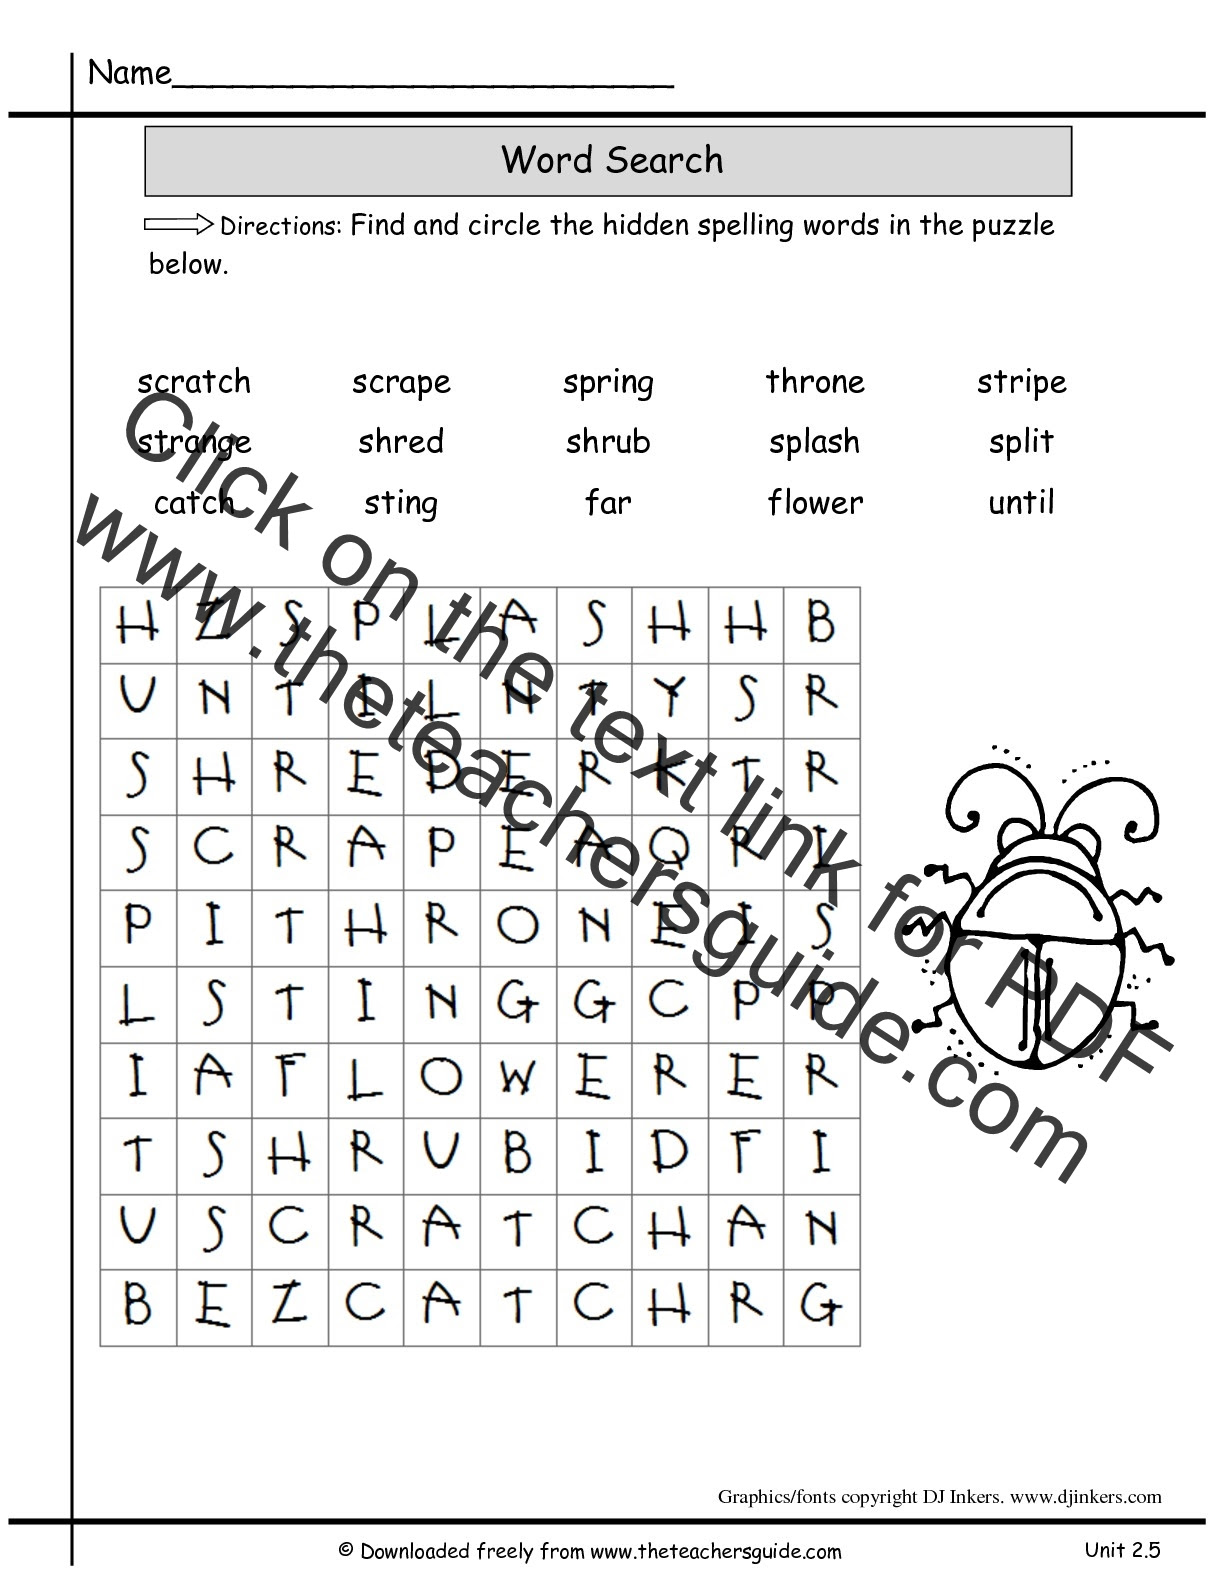 91 FREE DOWNLOAD SPELLING TEST TO PRINT OUT, TEST SPELLING